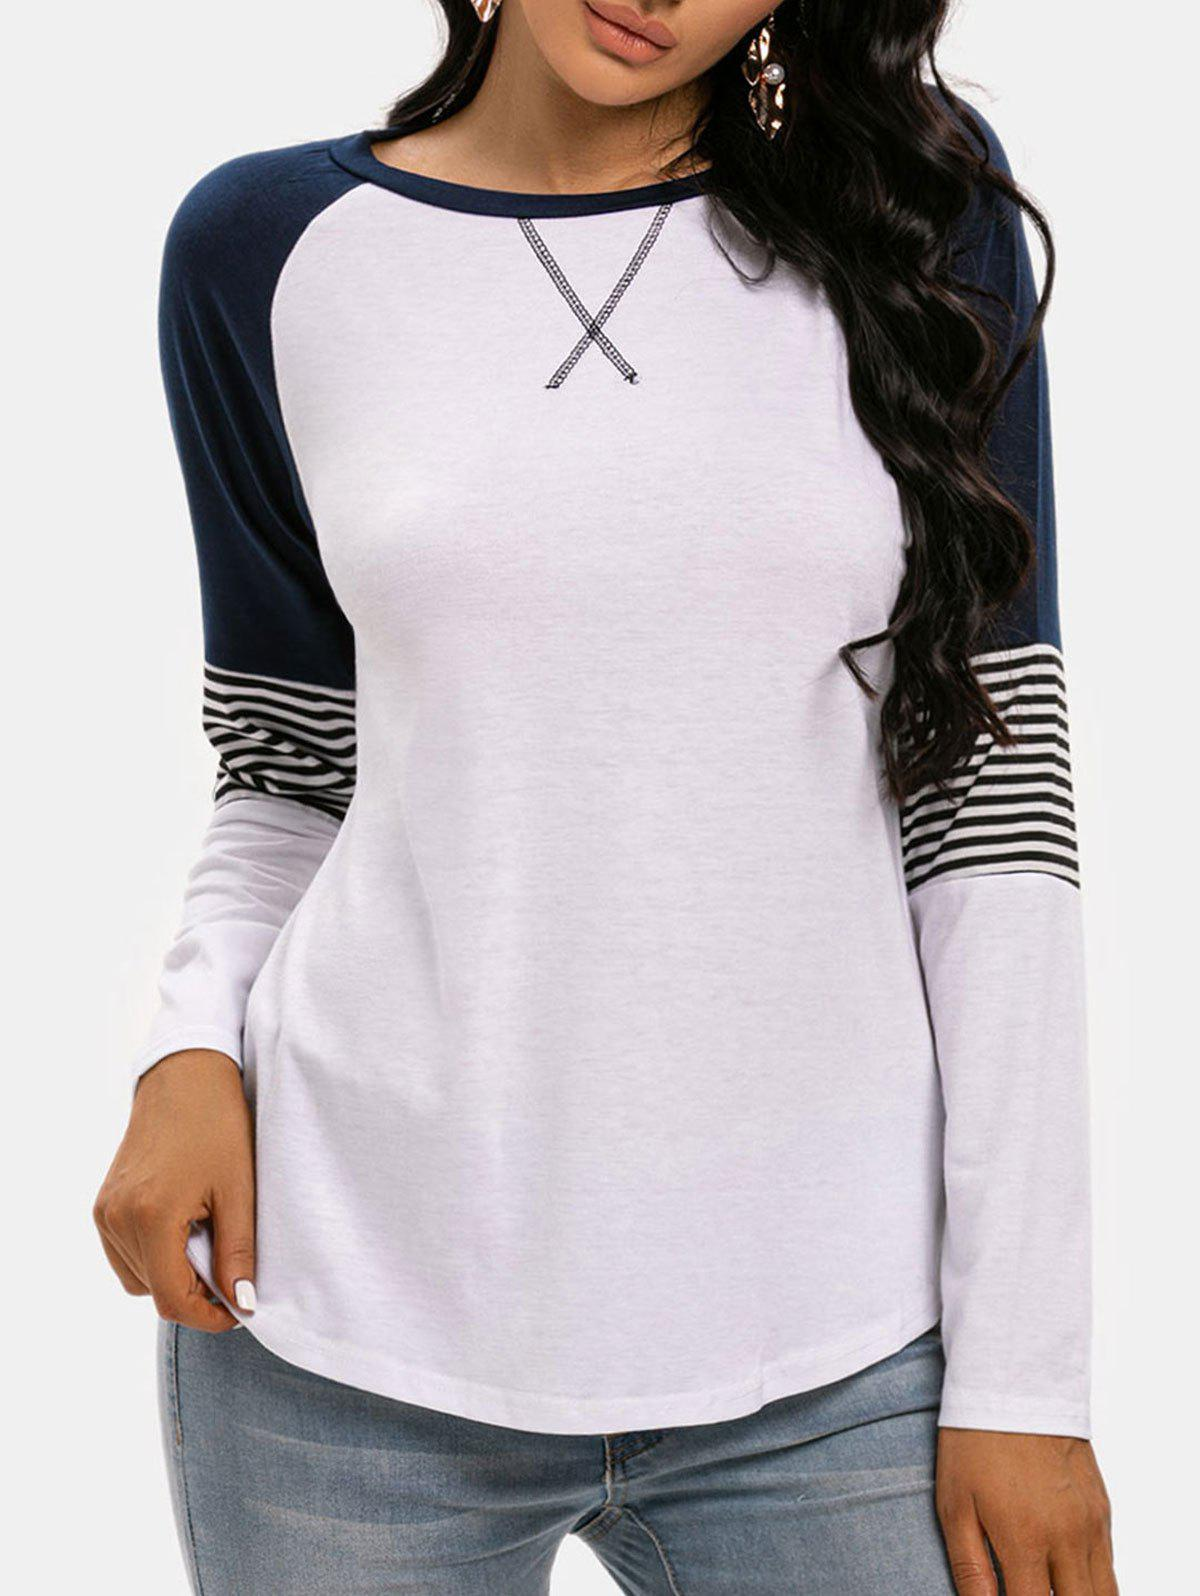 Raglan Sleeve Striped Colorblock T Shirt - WHITE S